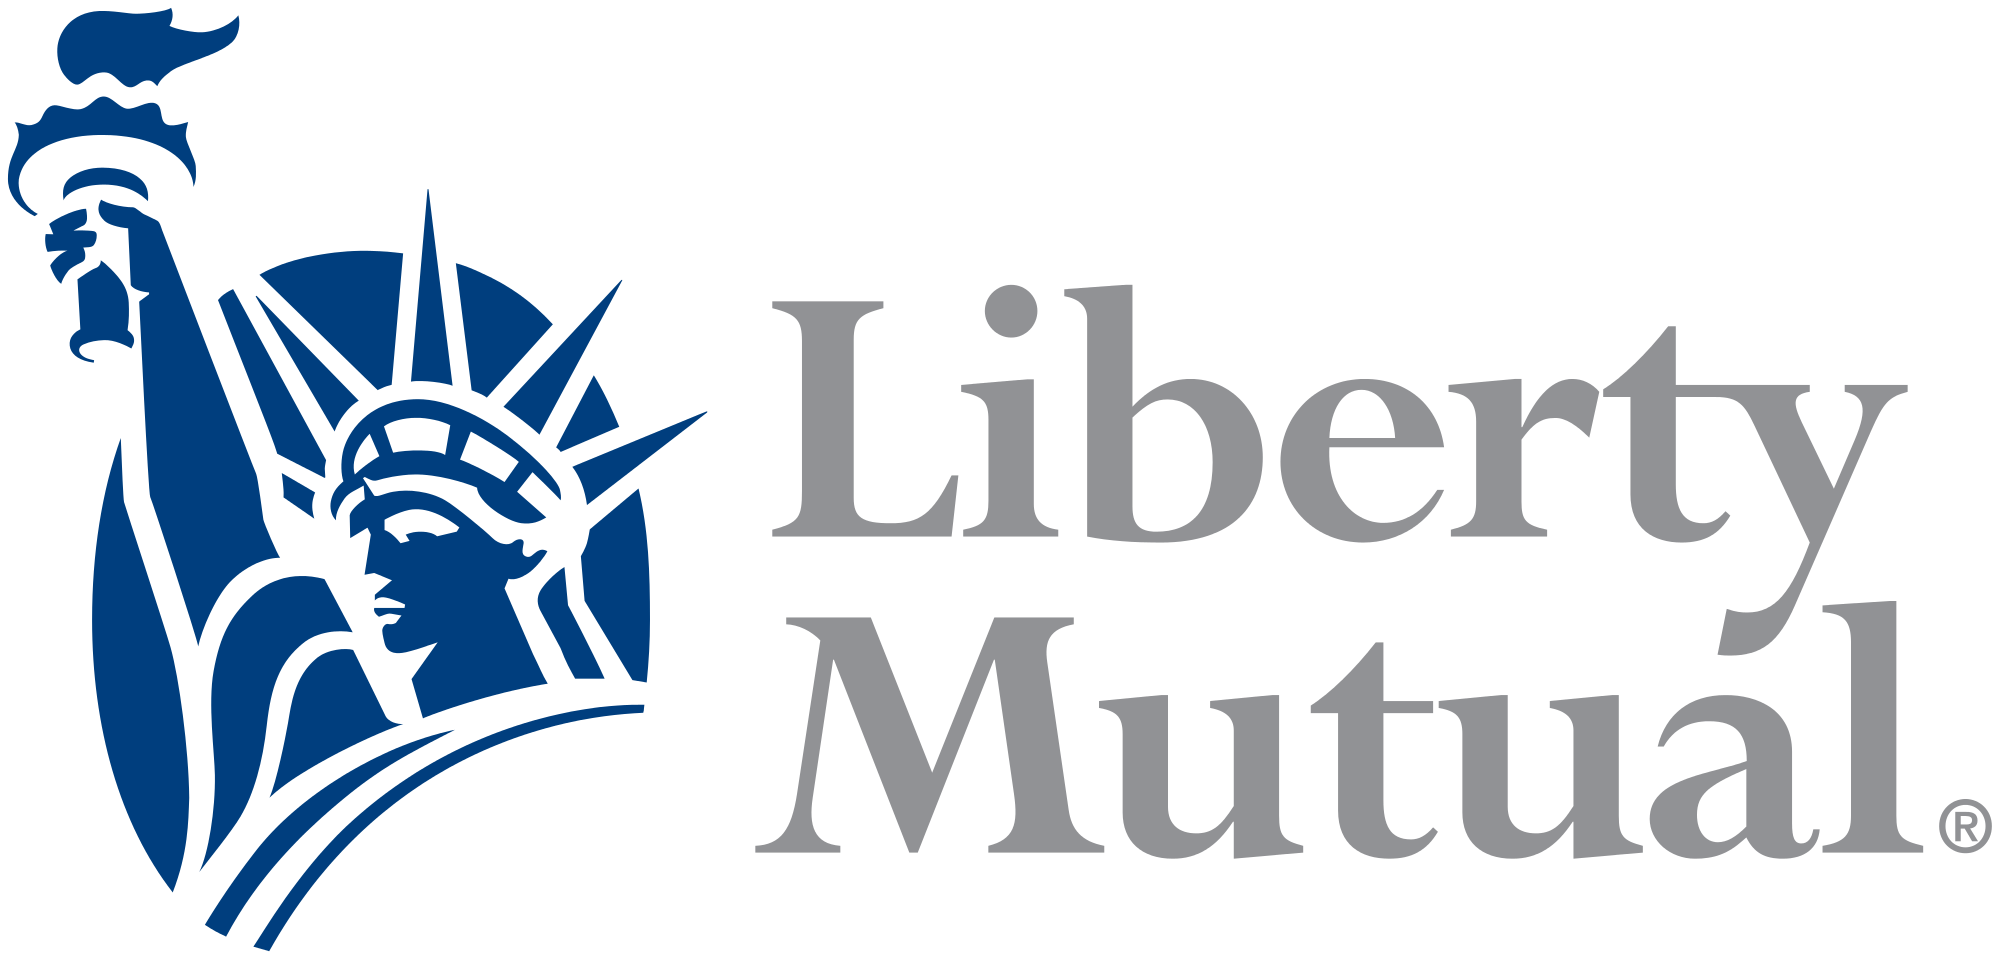 Liberty Mutual Life Insurance Quotes Magnificent Liberty Mutual Insurance Logos  Google Search  Insurance